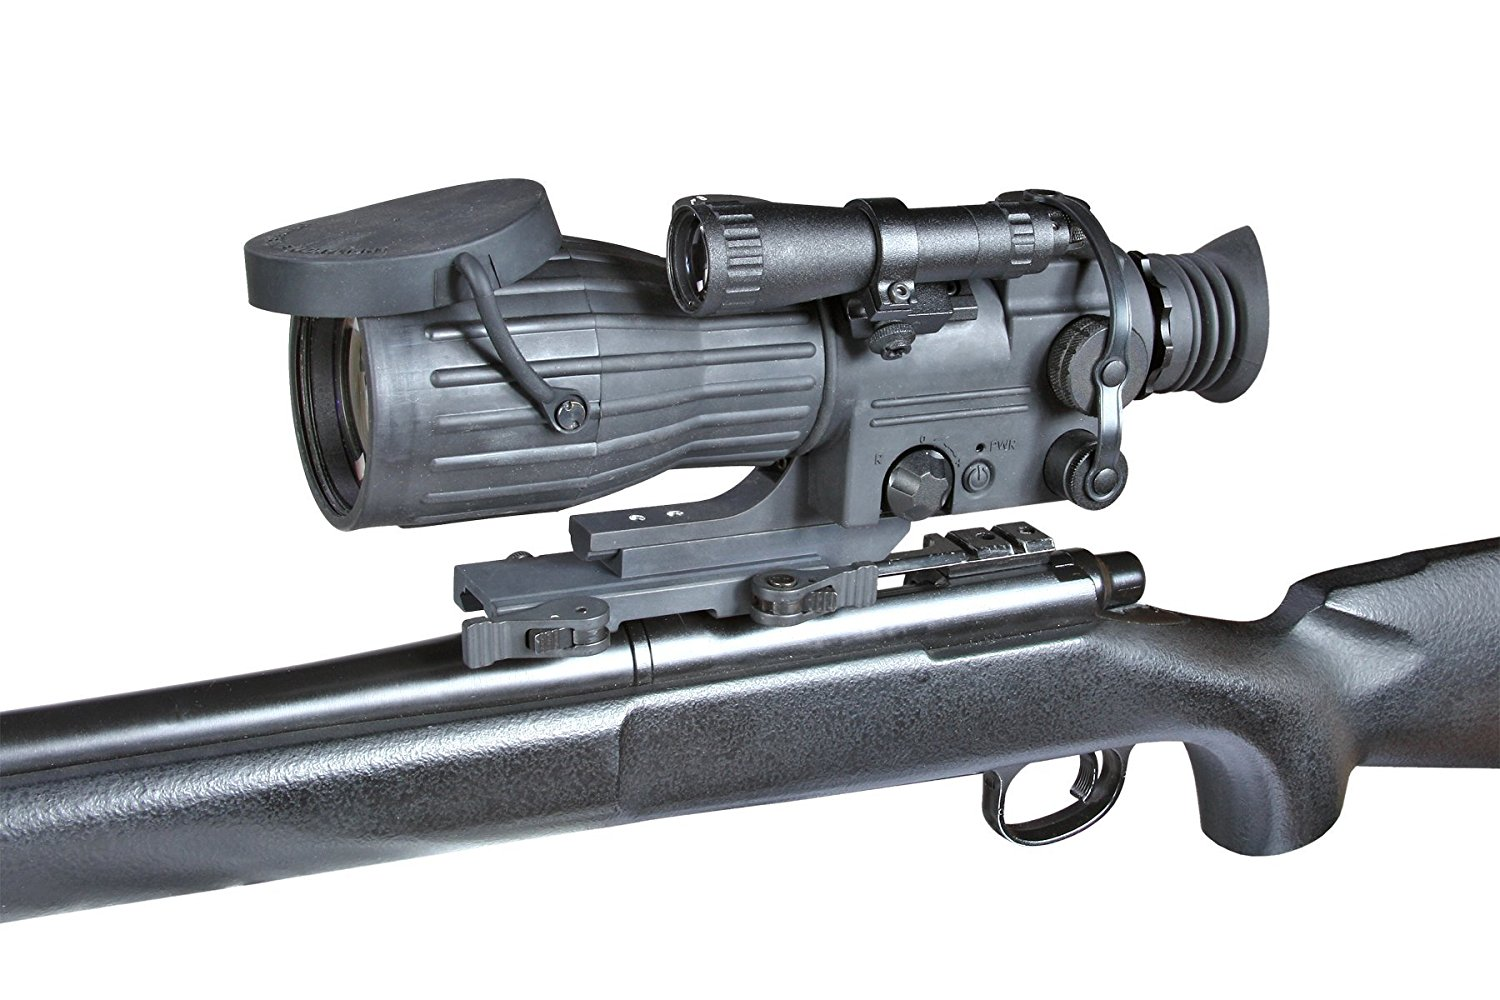 Armasight Orion 5x Gen 1+ Night Vision Rifle Scope Attached